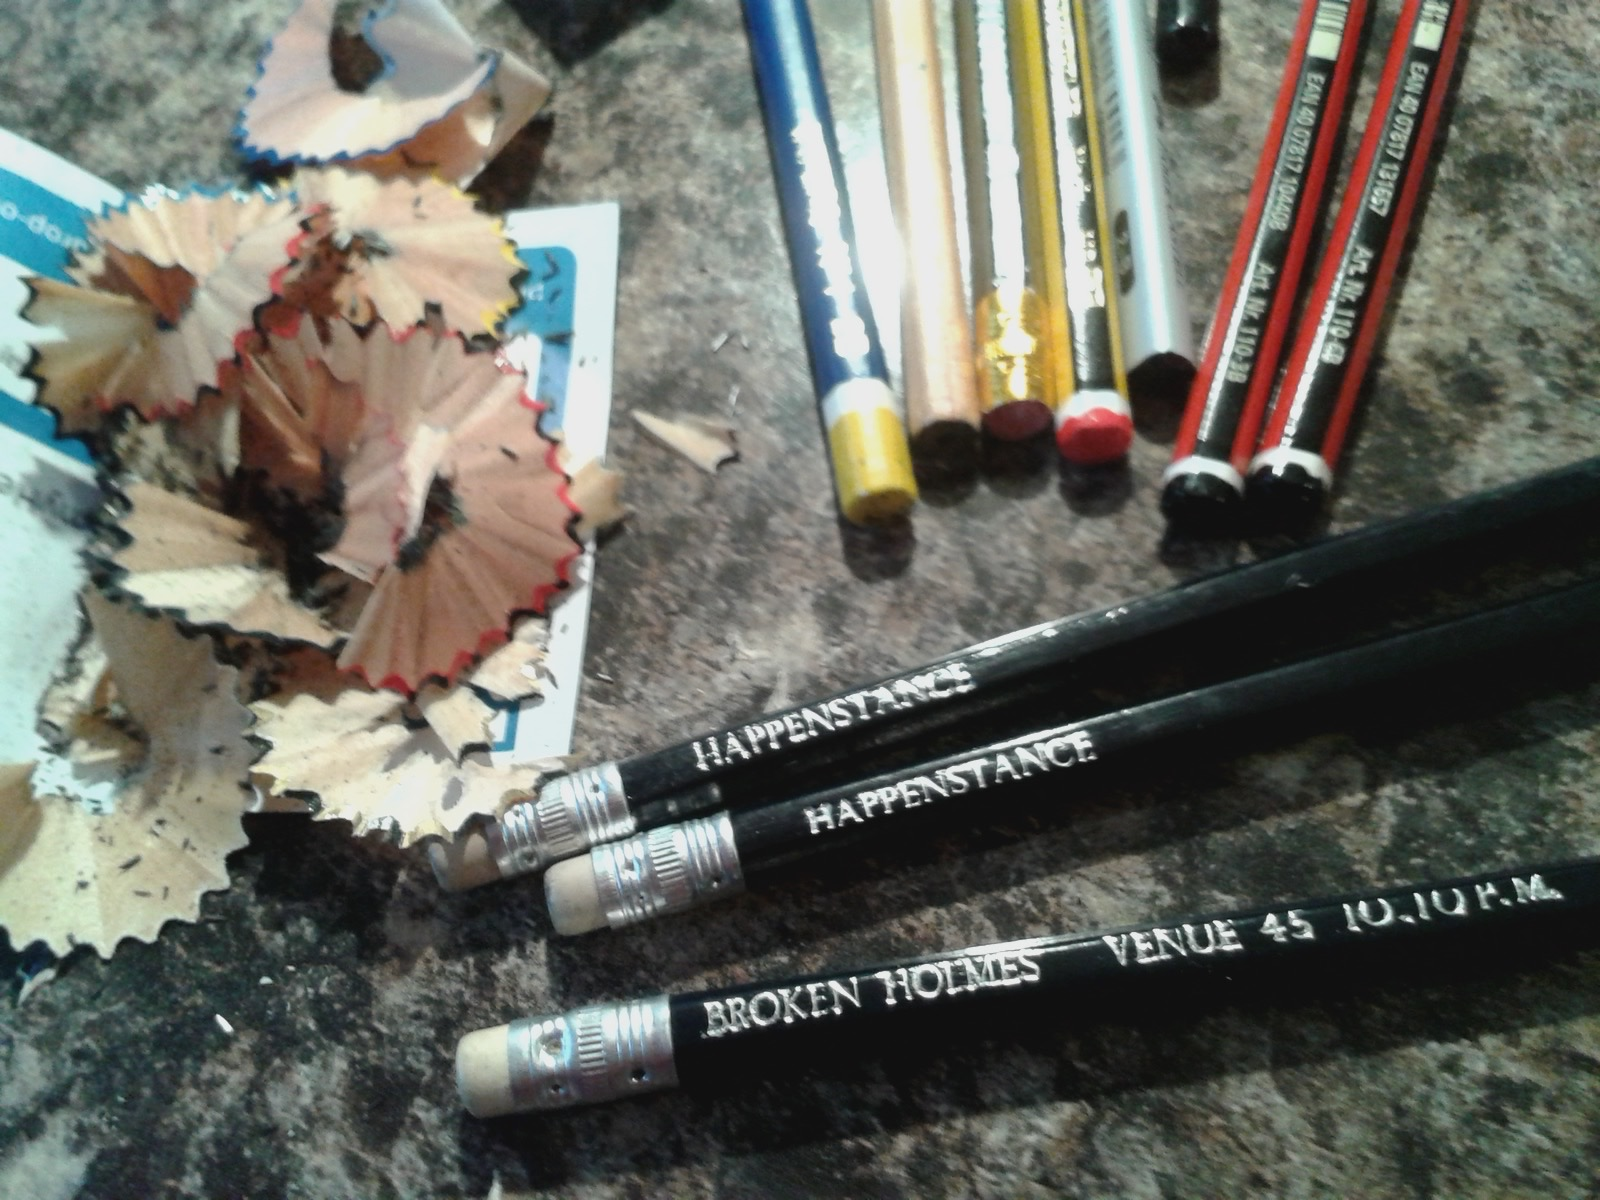 Full colour photo of a set of pencils, at different angles, and different types, with a sharpener and lots of sharpened pencil shavings.